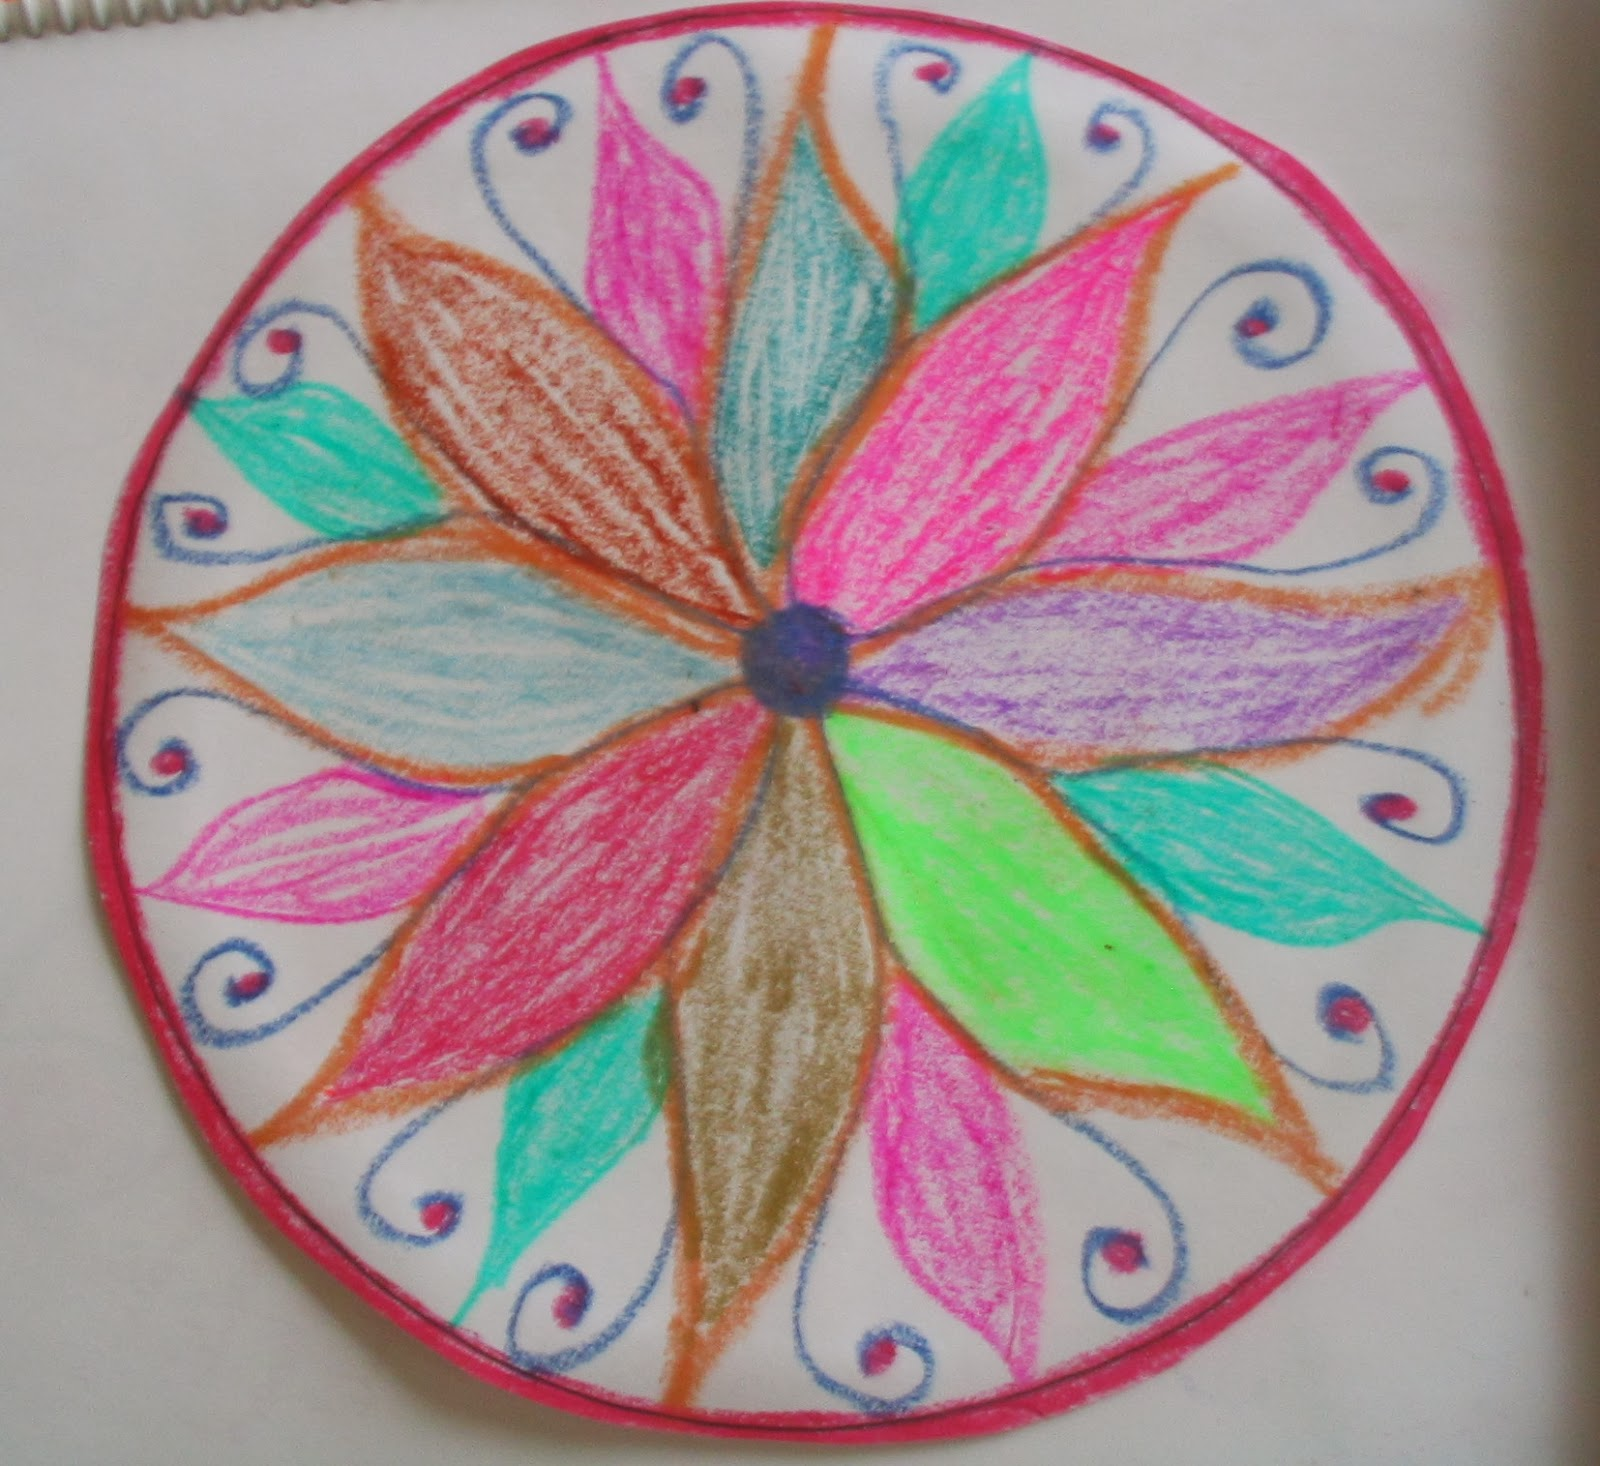 ateliers de journal creatif  comment cr u00e9er et interpr u00e9ter son propre mandala